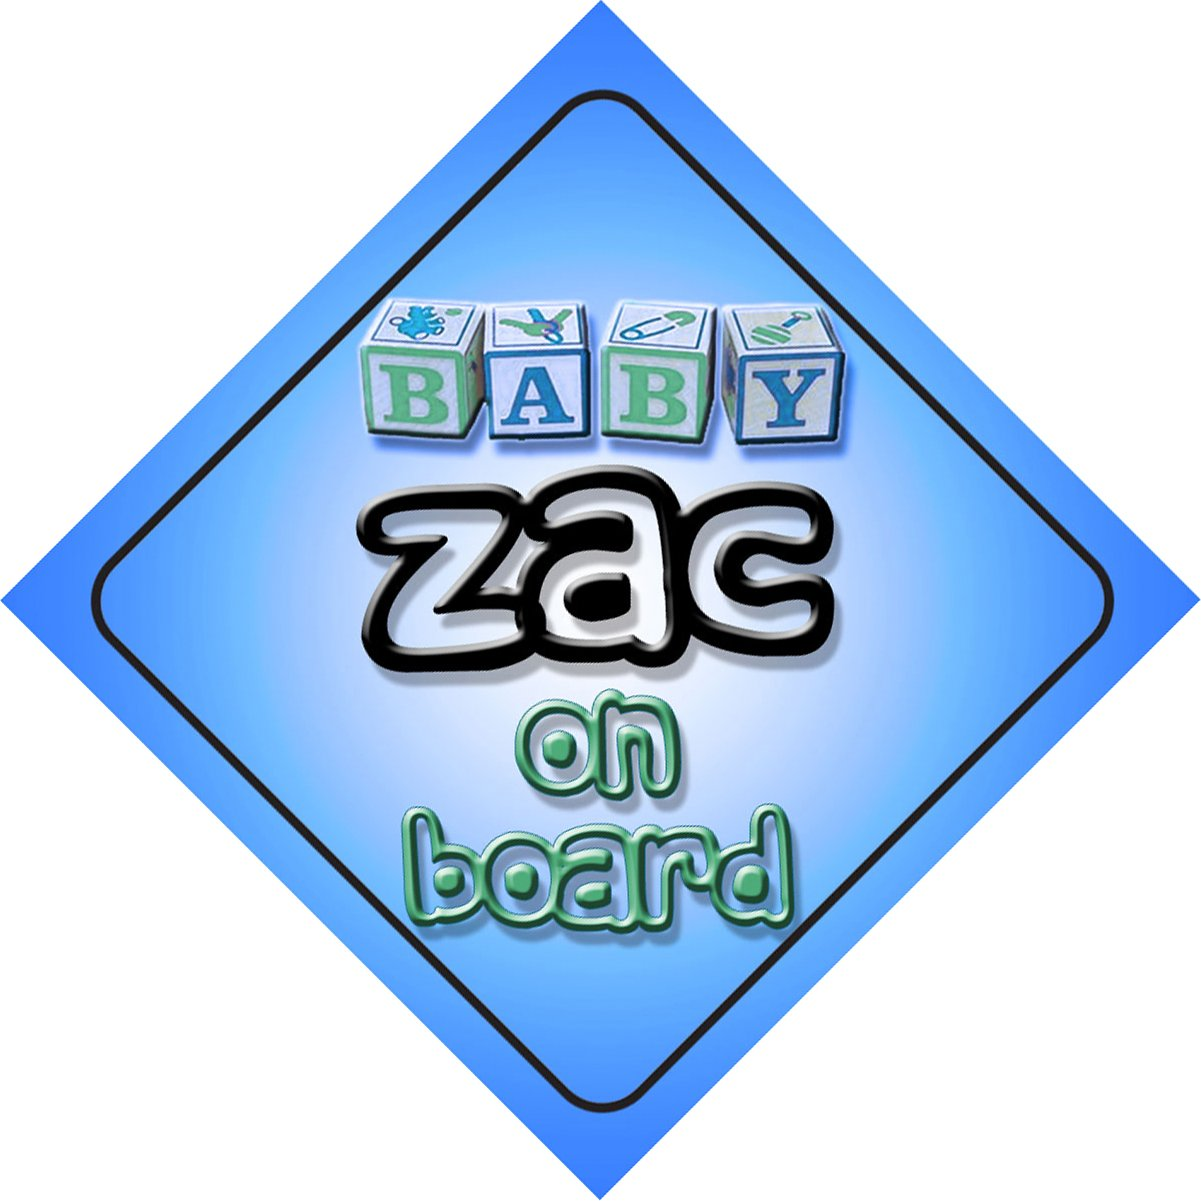 Baby Boy Zac on board novelty car sign gift / present for new child / newborn baby Quality Goods Ltd